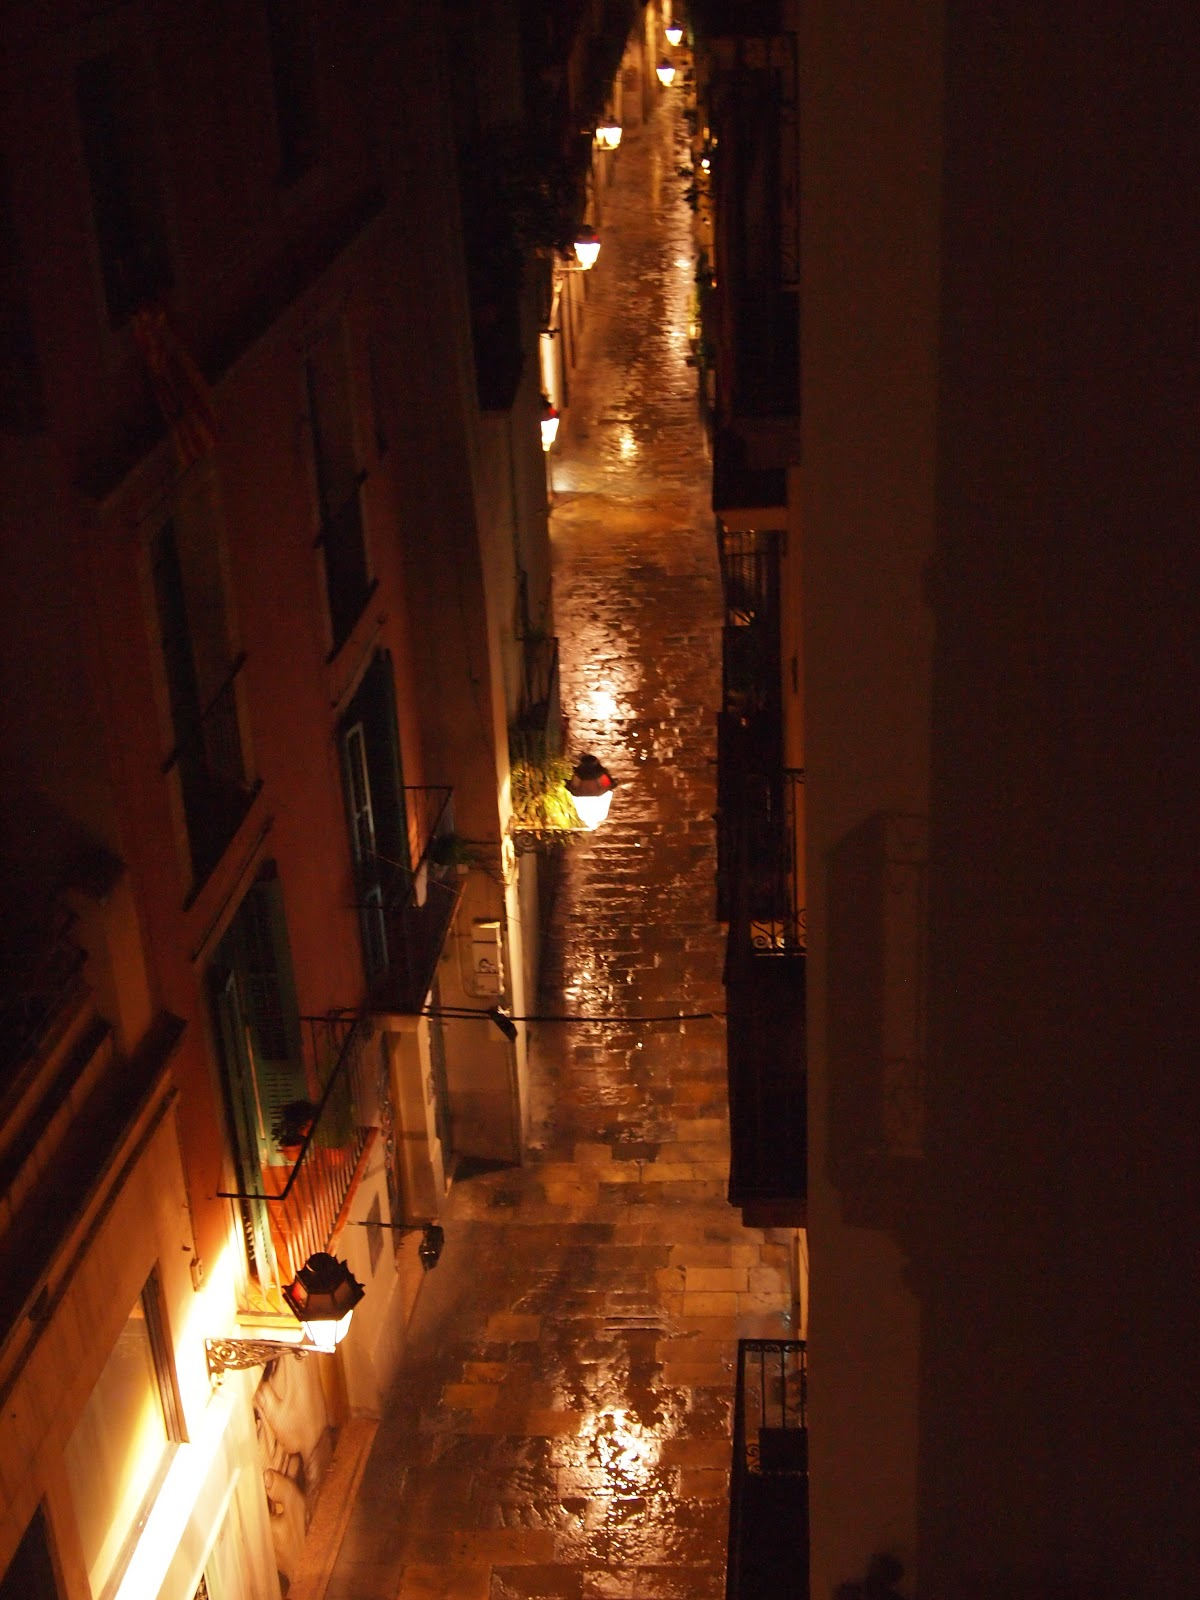 Barcelona Musica Y Colores Carrer Petritxol Home Sweet Home